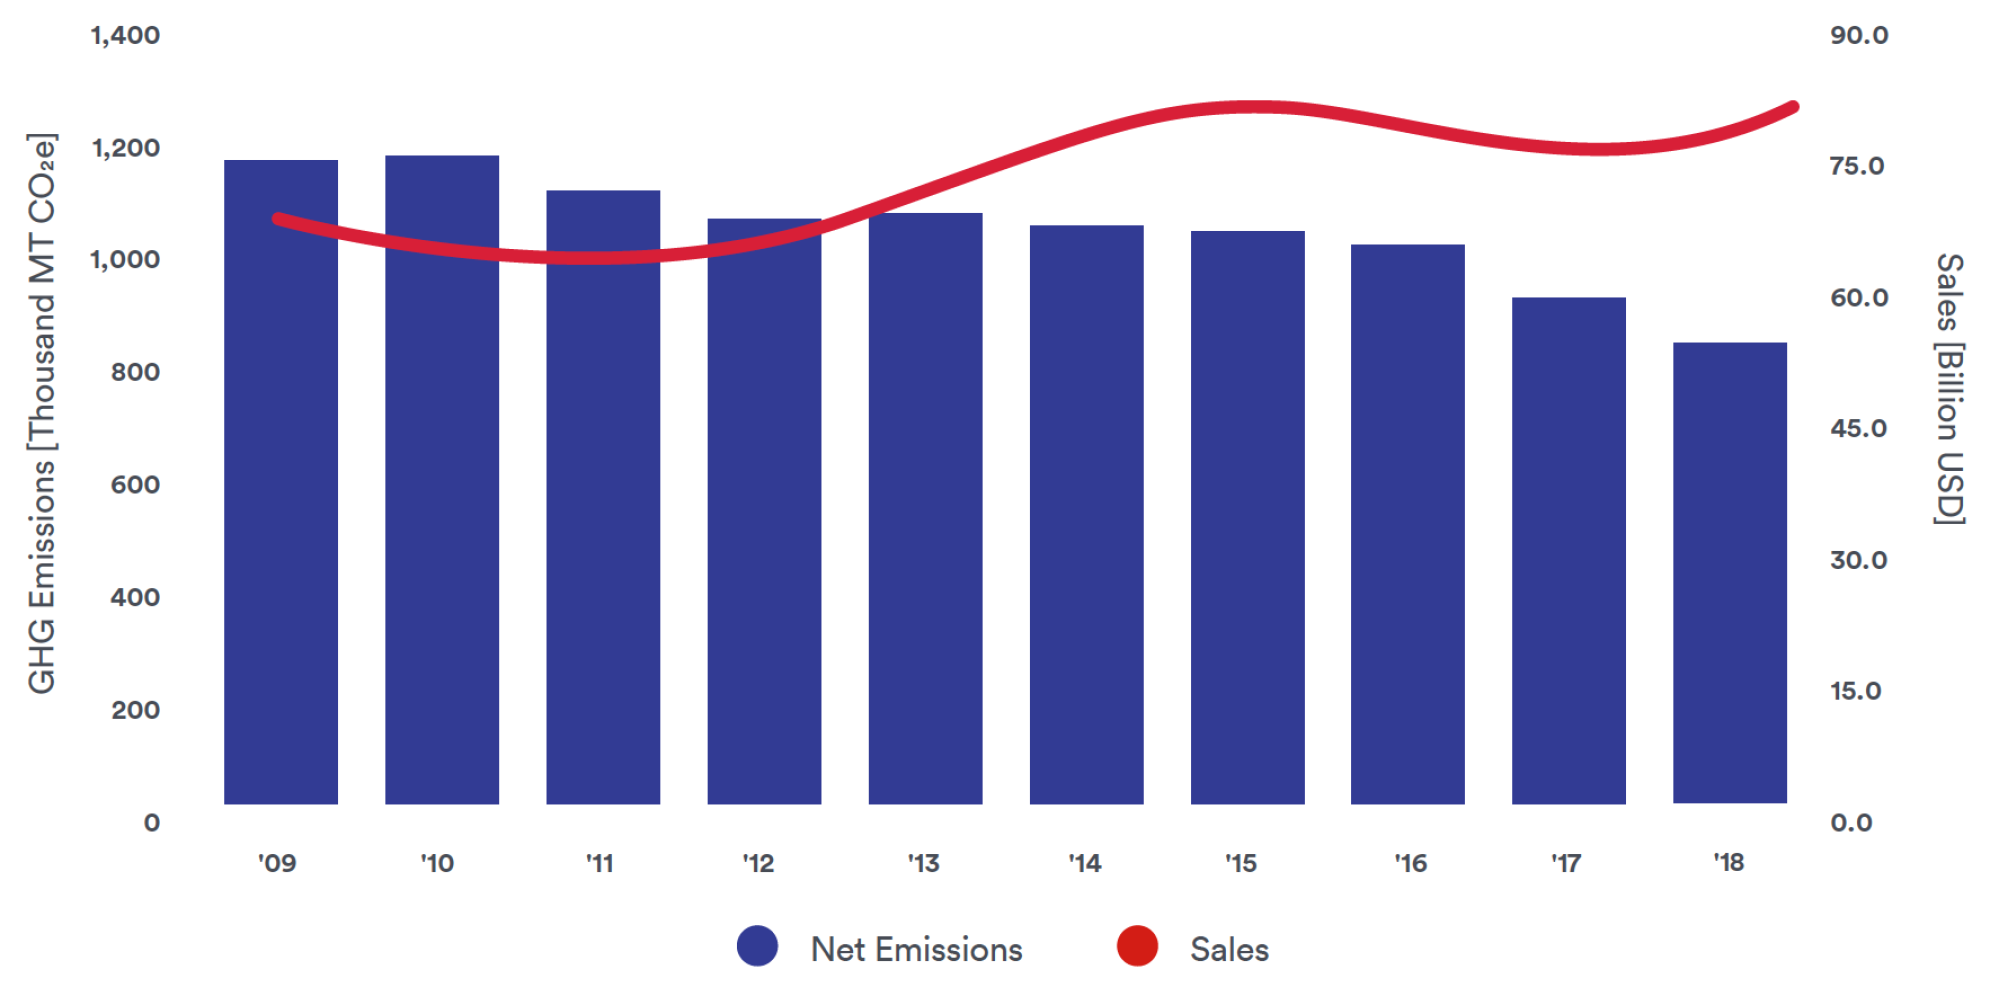 GHG Emissions (Facility Scope 1 & Scope 2) vs. Sales, 2009-2018